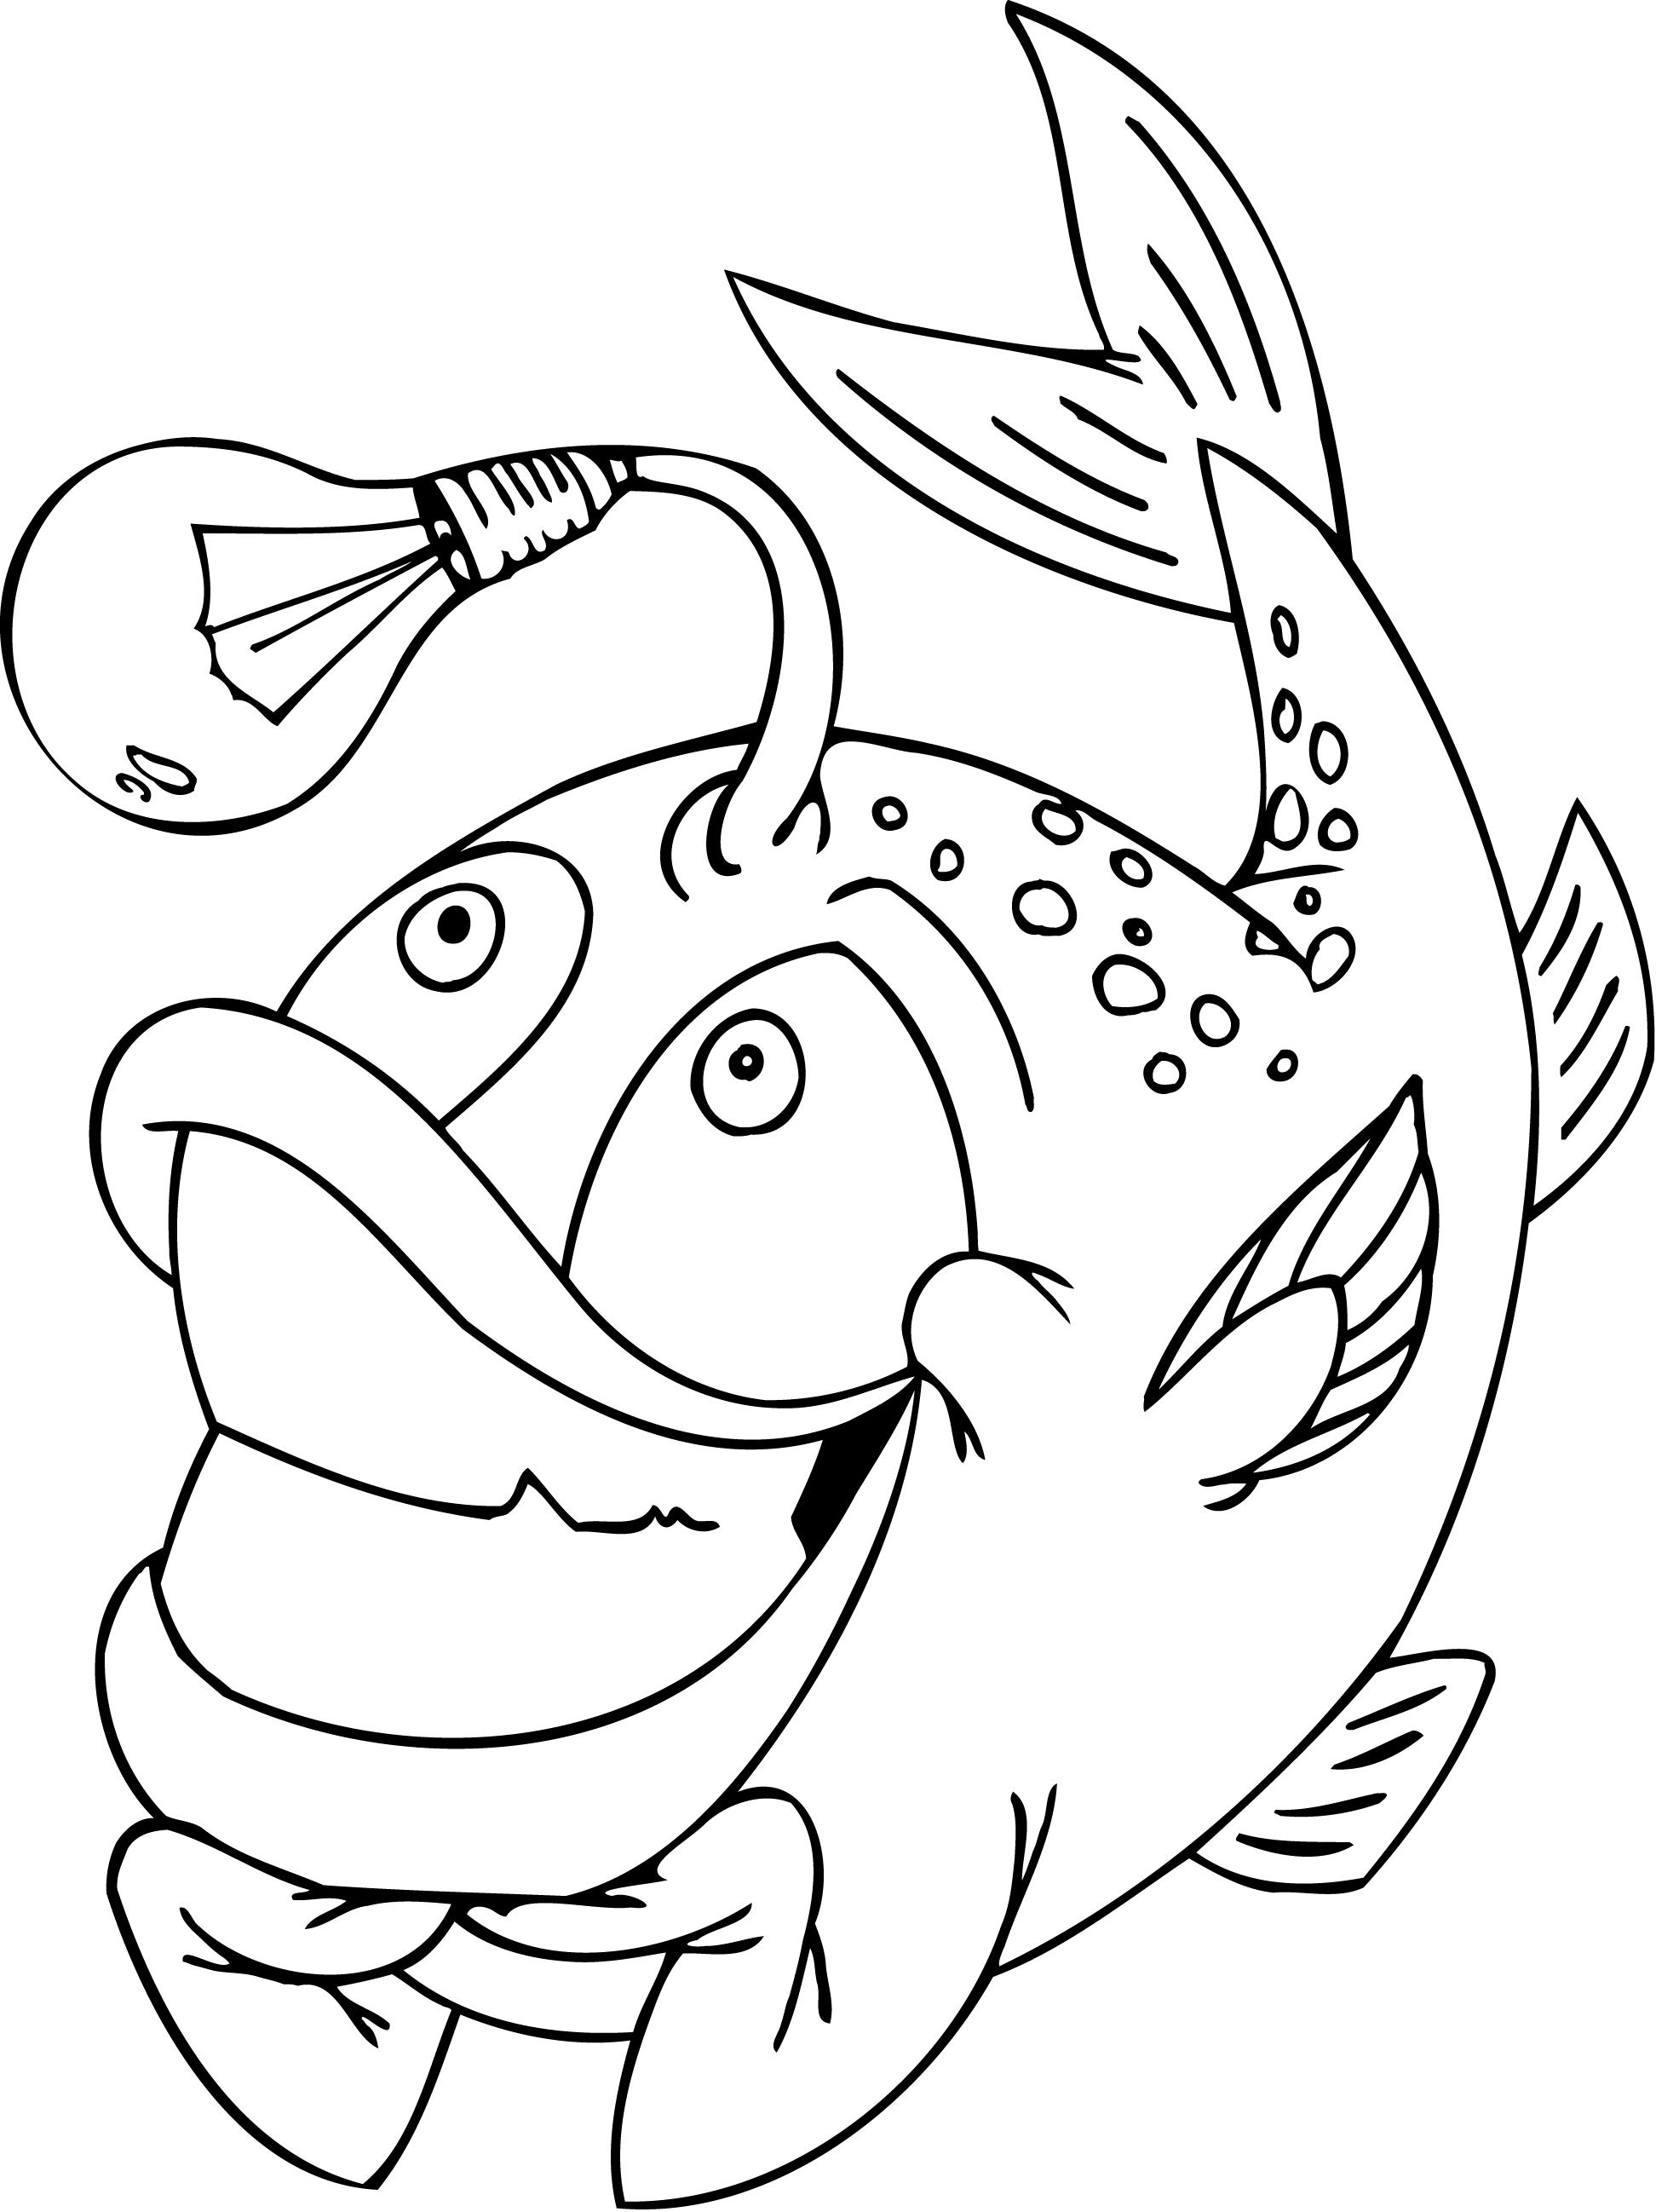 coloring pictures for teenagers coloring pictures for teenagers for coloring teenagers pictures